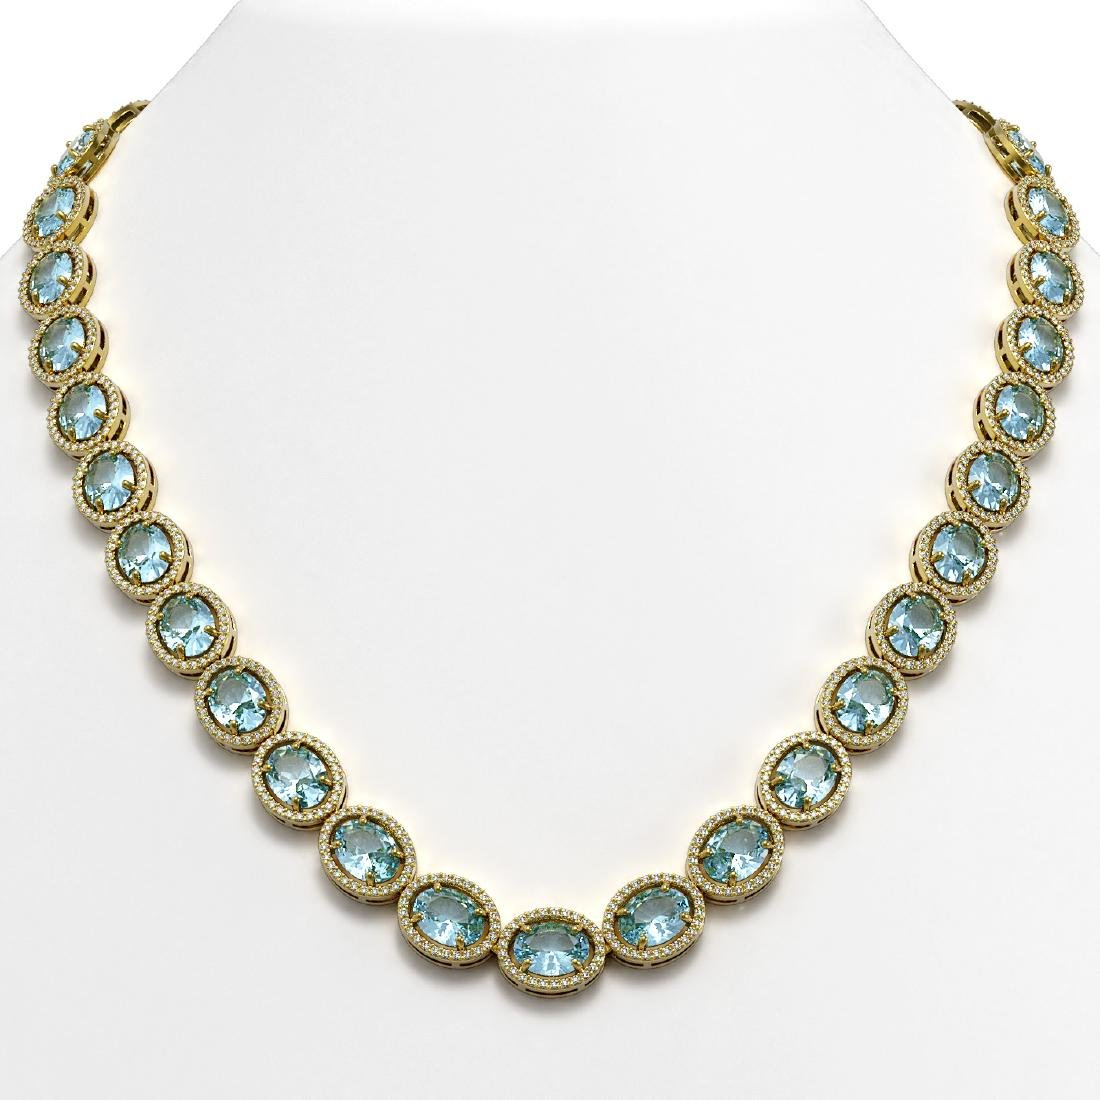 54.11 CTW Aquamarine & Diamond Halo Necklace 10K Yellow